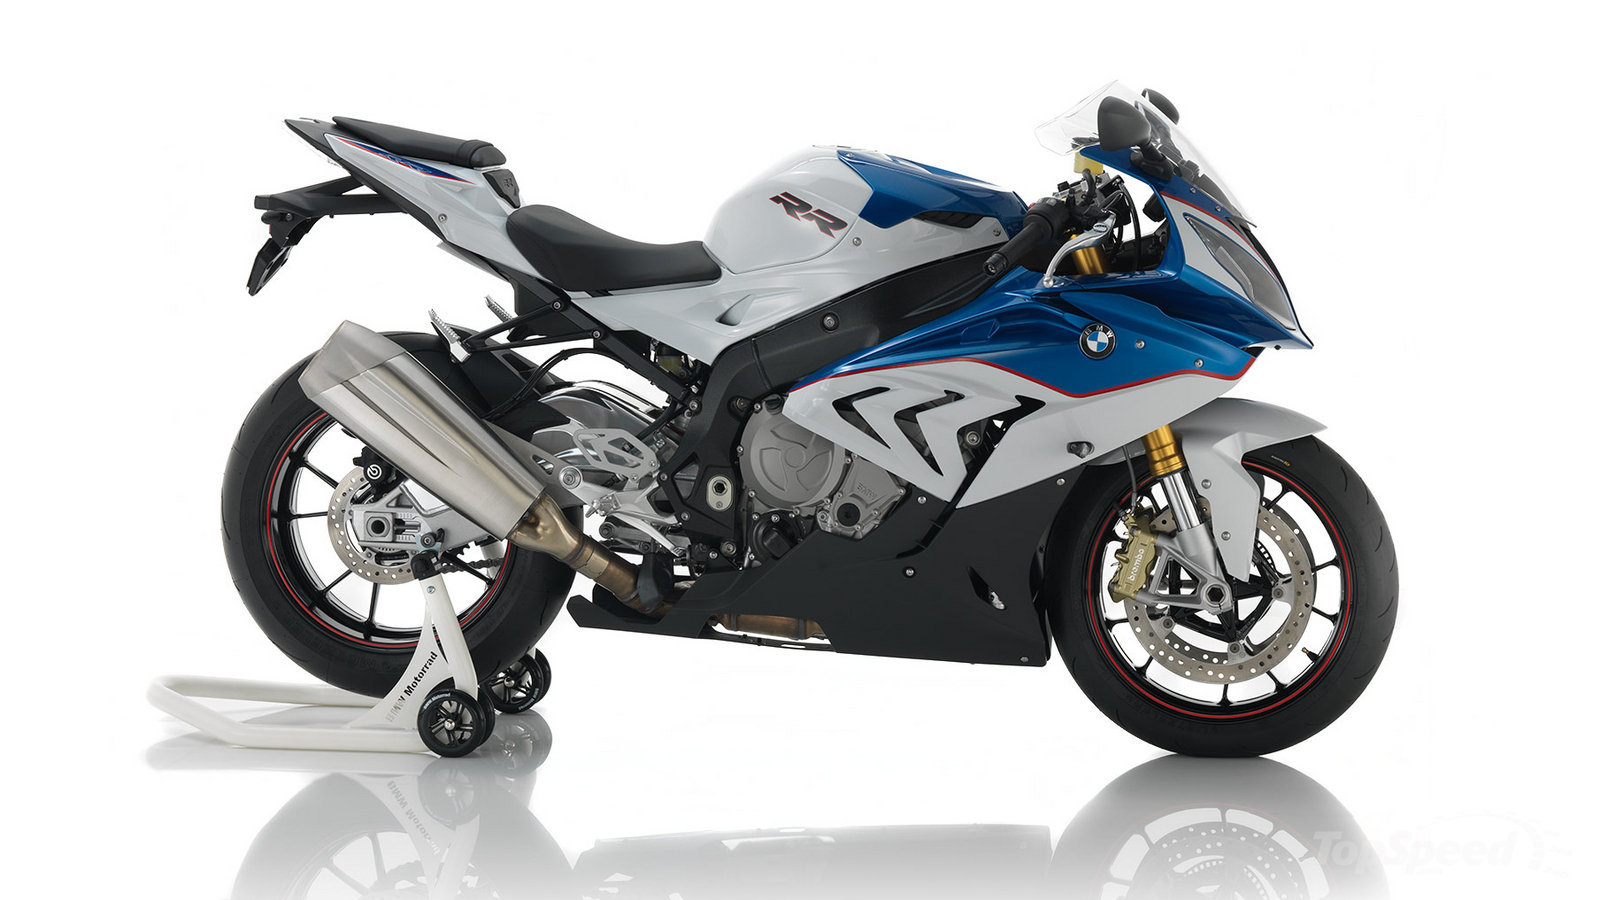 2015 2017 bmw s 1000 rr picture 678709 motorcycle review top speed. Black Bedroom Furniture Sets. Home Design Ideas